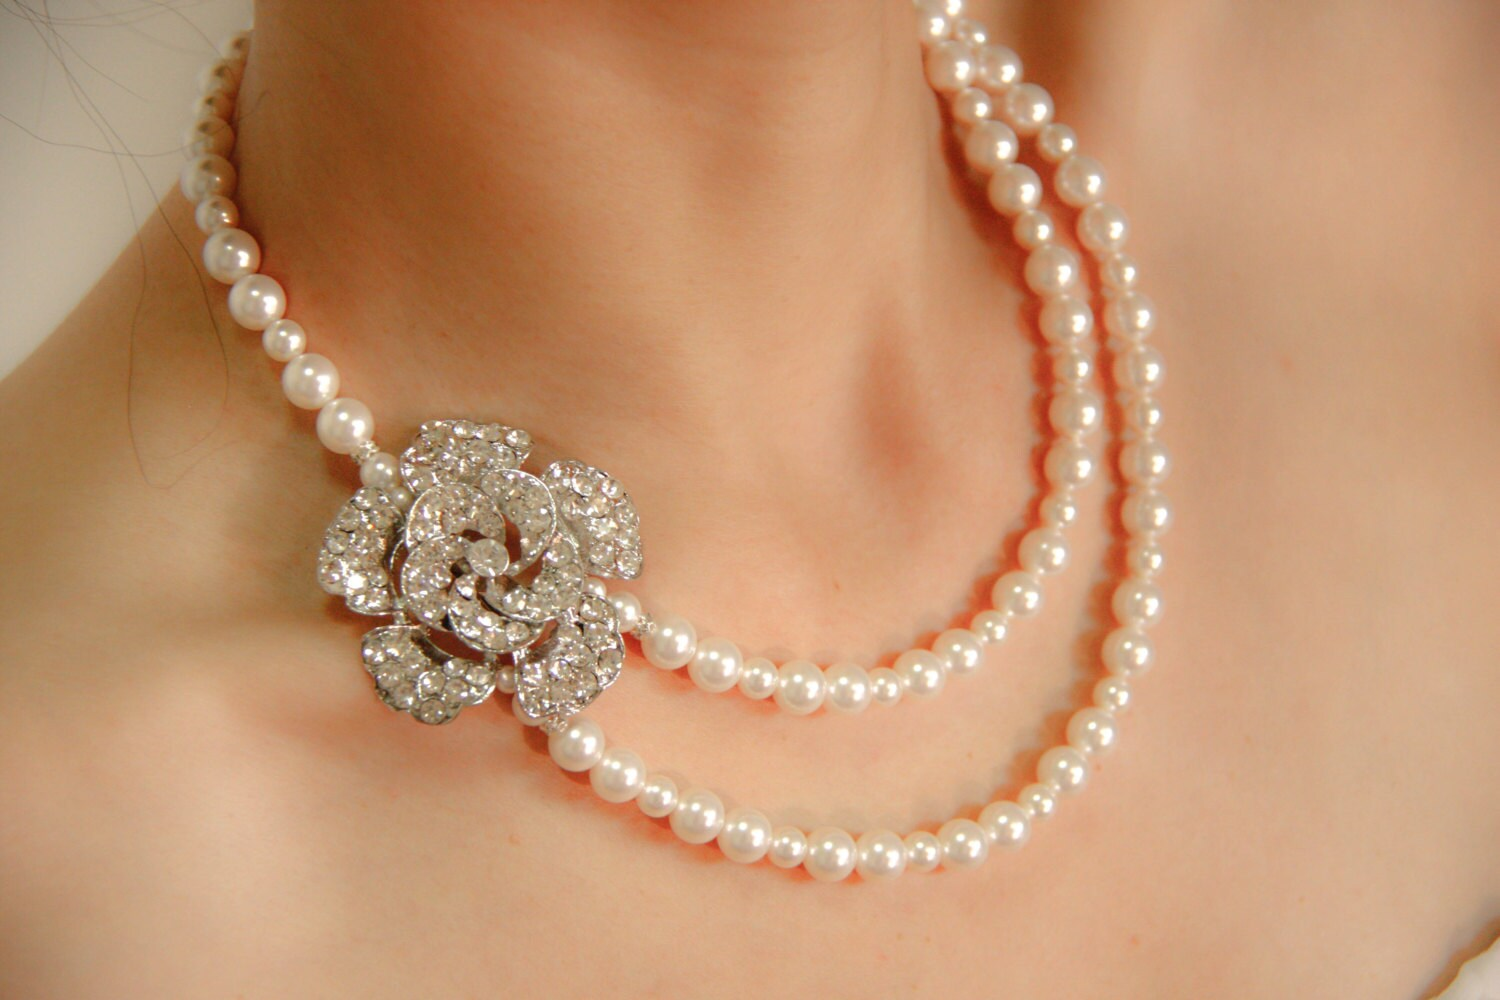 Bridal Pearl Wedding Jewelry Necklace, Vintage Style Classic Wedding Crystal With Swarovski  Pearls Necklace- Camellia - CupidsBijoux